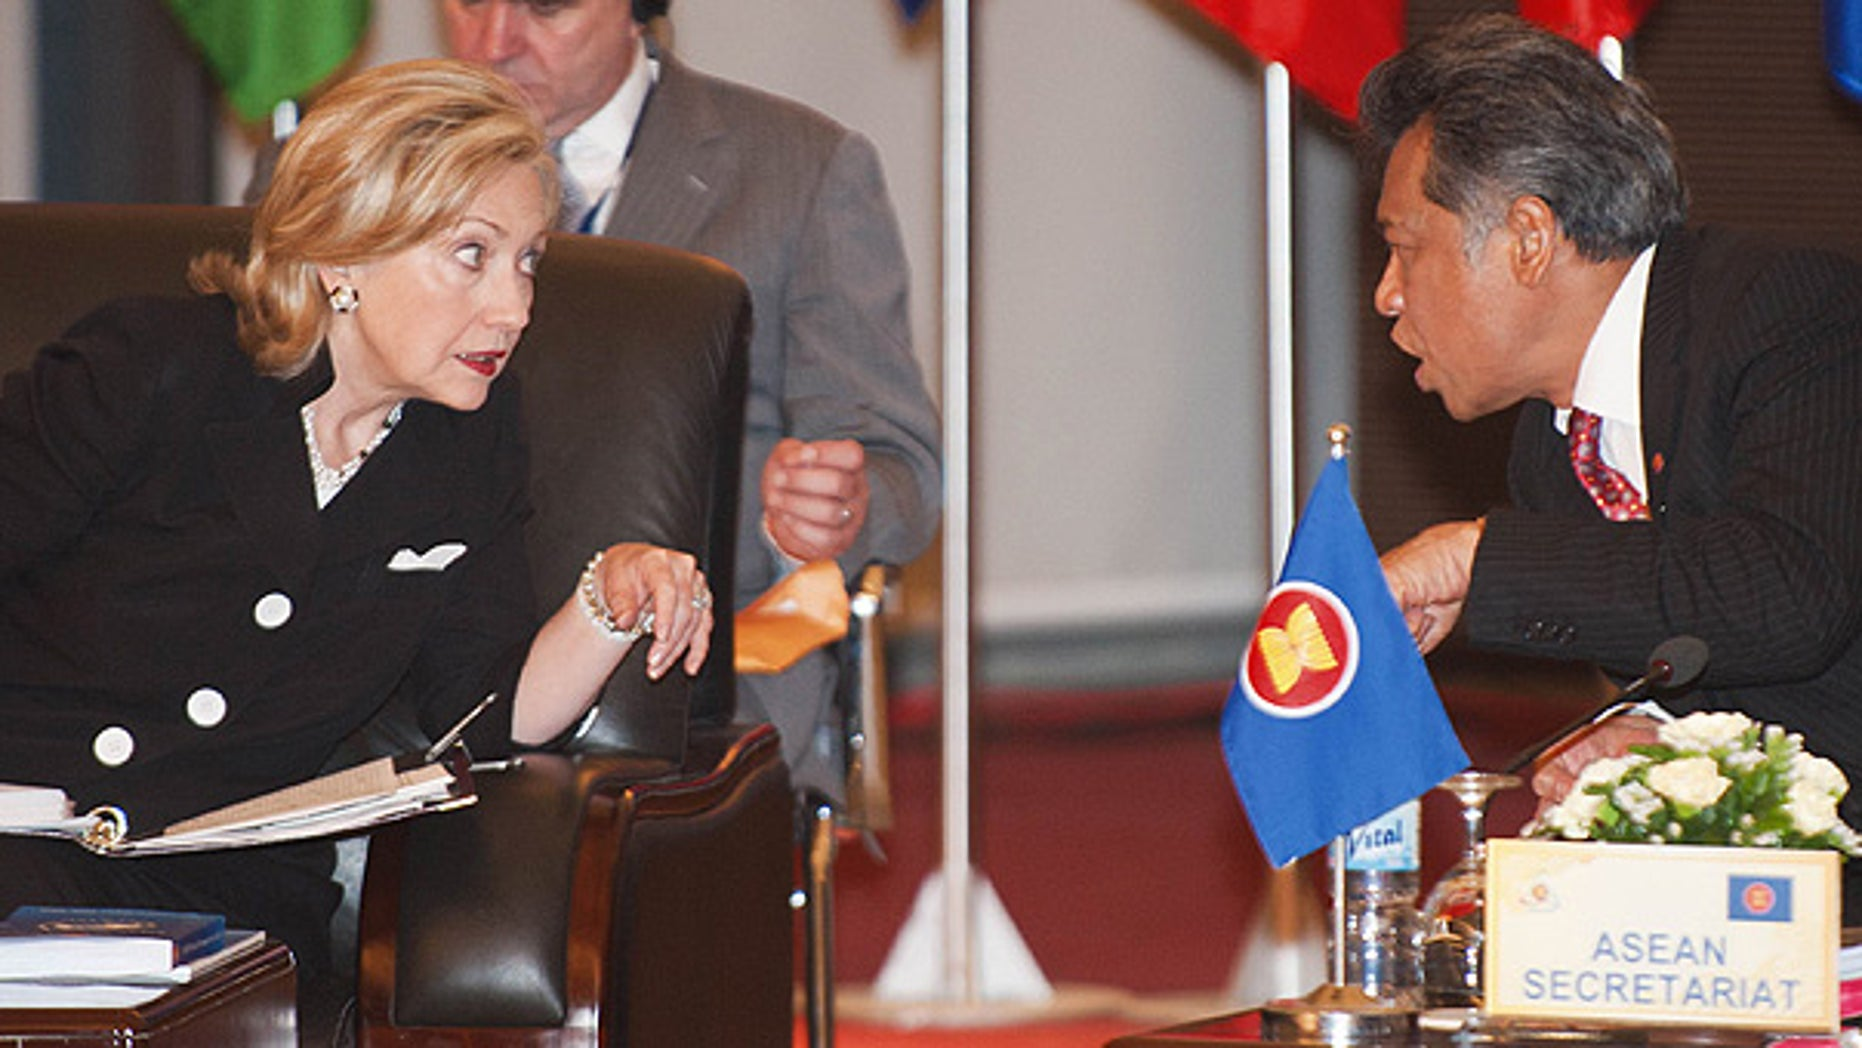 July 23:  Secretary of State Hillary Clinton speaks with ASEAN Secretary Surin Pitsuwan during 17th ASEAN Regional forum Retreat meeting in Hanoi.